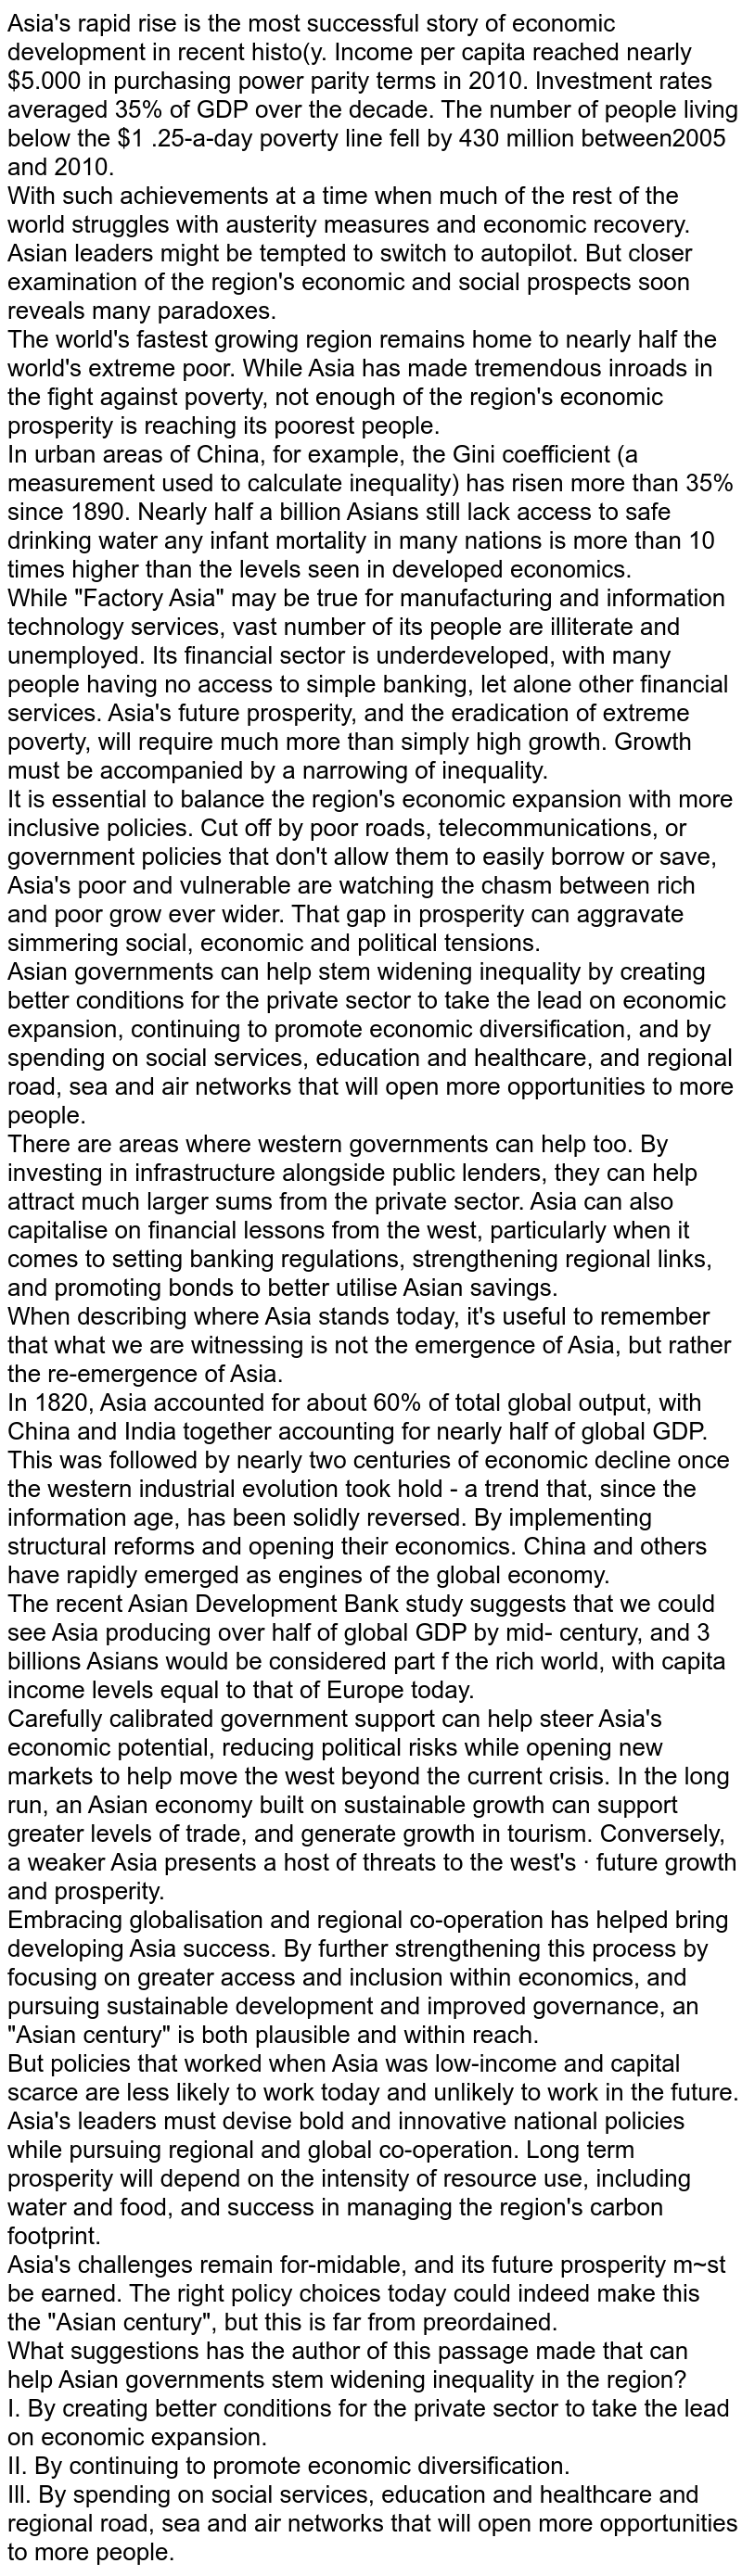 """Asia's rapid rise is the most successful story of economic development in recent histo(y. Income per capita reached nearly $5.000 in purchasing power parity terms in 2010. lnvestment rates averaged 35% of GDP over the decade. The number of people living below the $1 .25-a-day poverty line fell by 430 million  between2005 and 2010. <br> With such achievements at a time when much of the rest of the world struggles with austerity measures and economic recovery. Asian leaders might be tempted to switch to autopilot. But closer examination of the region's economic and social  prospects soon reveals many paradoxes.  <br> The world's fastest growing region remains home to nearly half the world's extreme poor. While Asia has made tremendous inroads in the fight against poverty, not enough of the region's economic prosperity is reaching its poorest people. <br> In urban areas of China, for example, the Gini coefficient (a measurement used to calculate inequality) has risen more than 35% since 1890. Nearly half a billion Asians still lack access to safe drinking water any infant mortality in many nations is more than 10 times higher than the levels seen in developed economics. <br> While """"Factory Asia"""" may be true for manufacturing and information technology services, vast number of its people are illiterate and unemployed. Its financial sector is underdeveloped, with many people having no access to simple banking, let alone other financial services. Asia's future prosperity, and the eradication of extreme poverty, will require much more than simply high growth. Growth must be accompanied by a narrowing of inequality. <br> It is essential to balance the region's economic expansion with more inclusive policies. Cut off by poor roads, telecommunications, or government policies that don't allow them to easily borrow or save, Asia's poor and vulnerable are watching the chasm between rich and poor grow ever wider. That gap in prosperity can aggravate simmering social, economic and"""